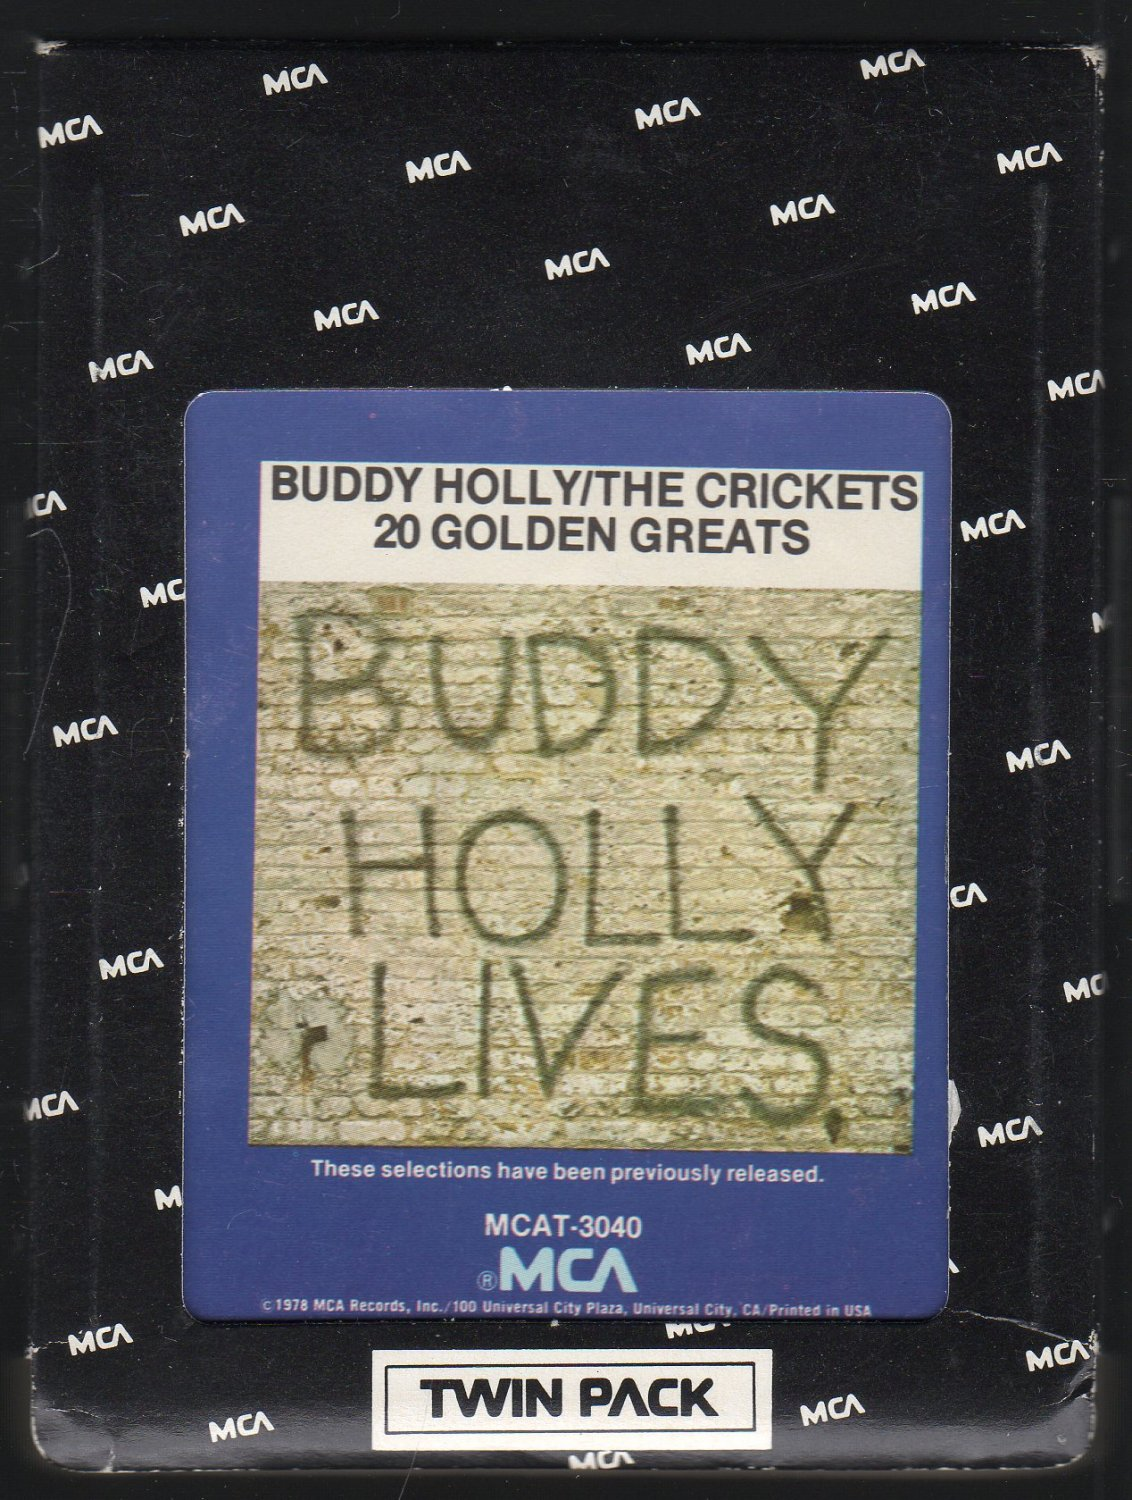 Buddy Holly / The Crickets - Buddy Holly Lives 20 Golden Greats MCA 8-track tape